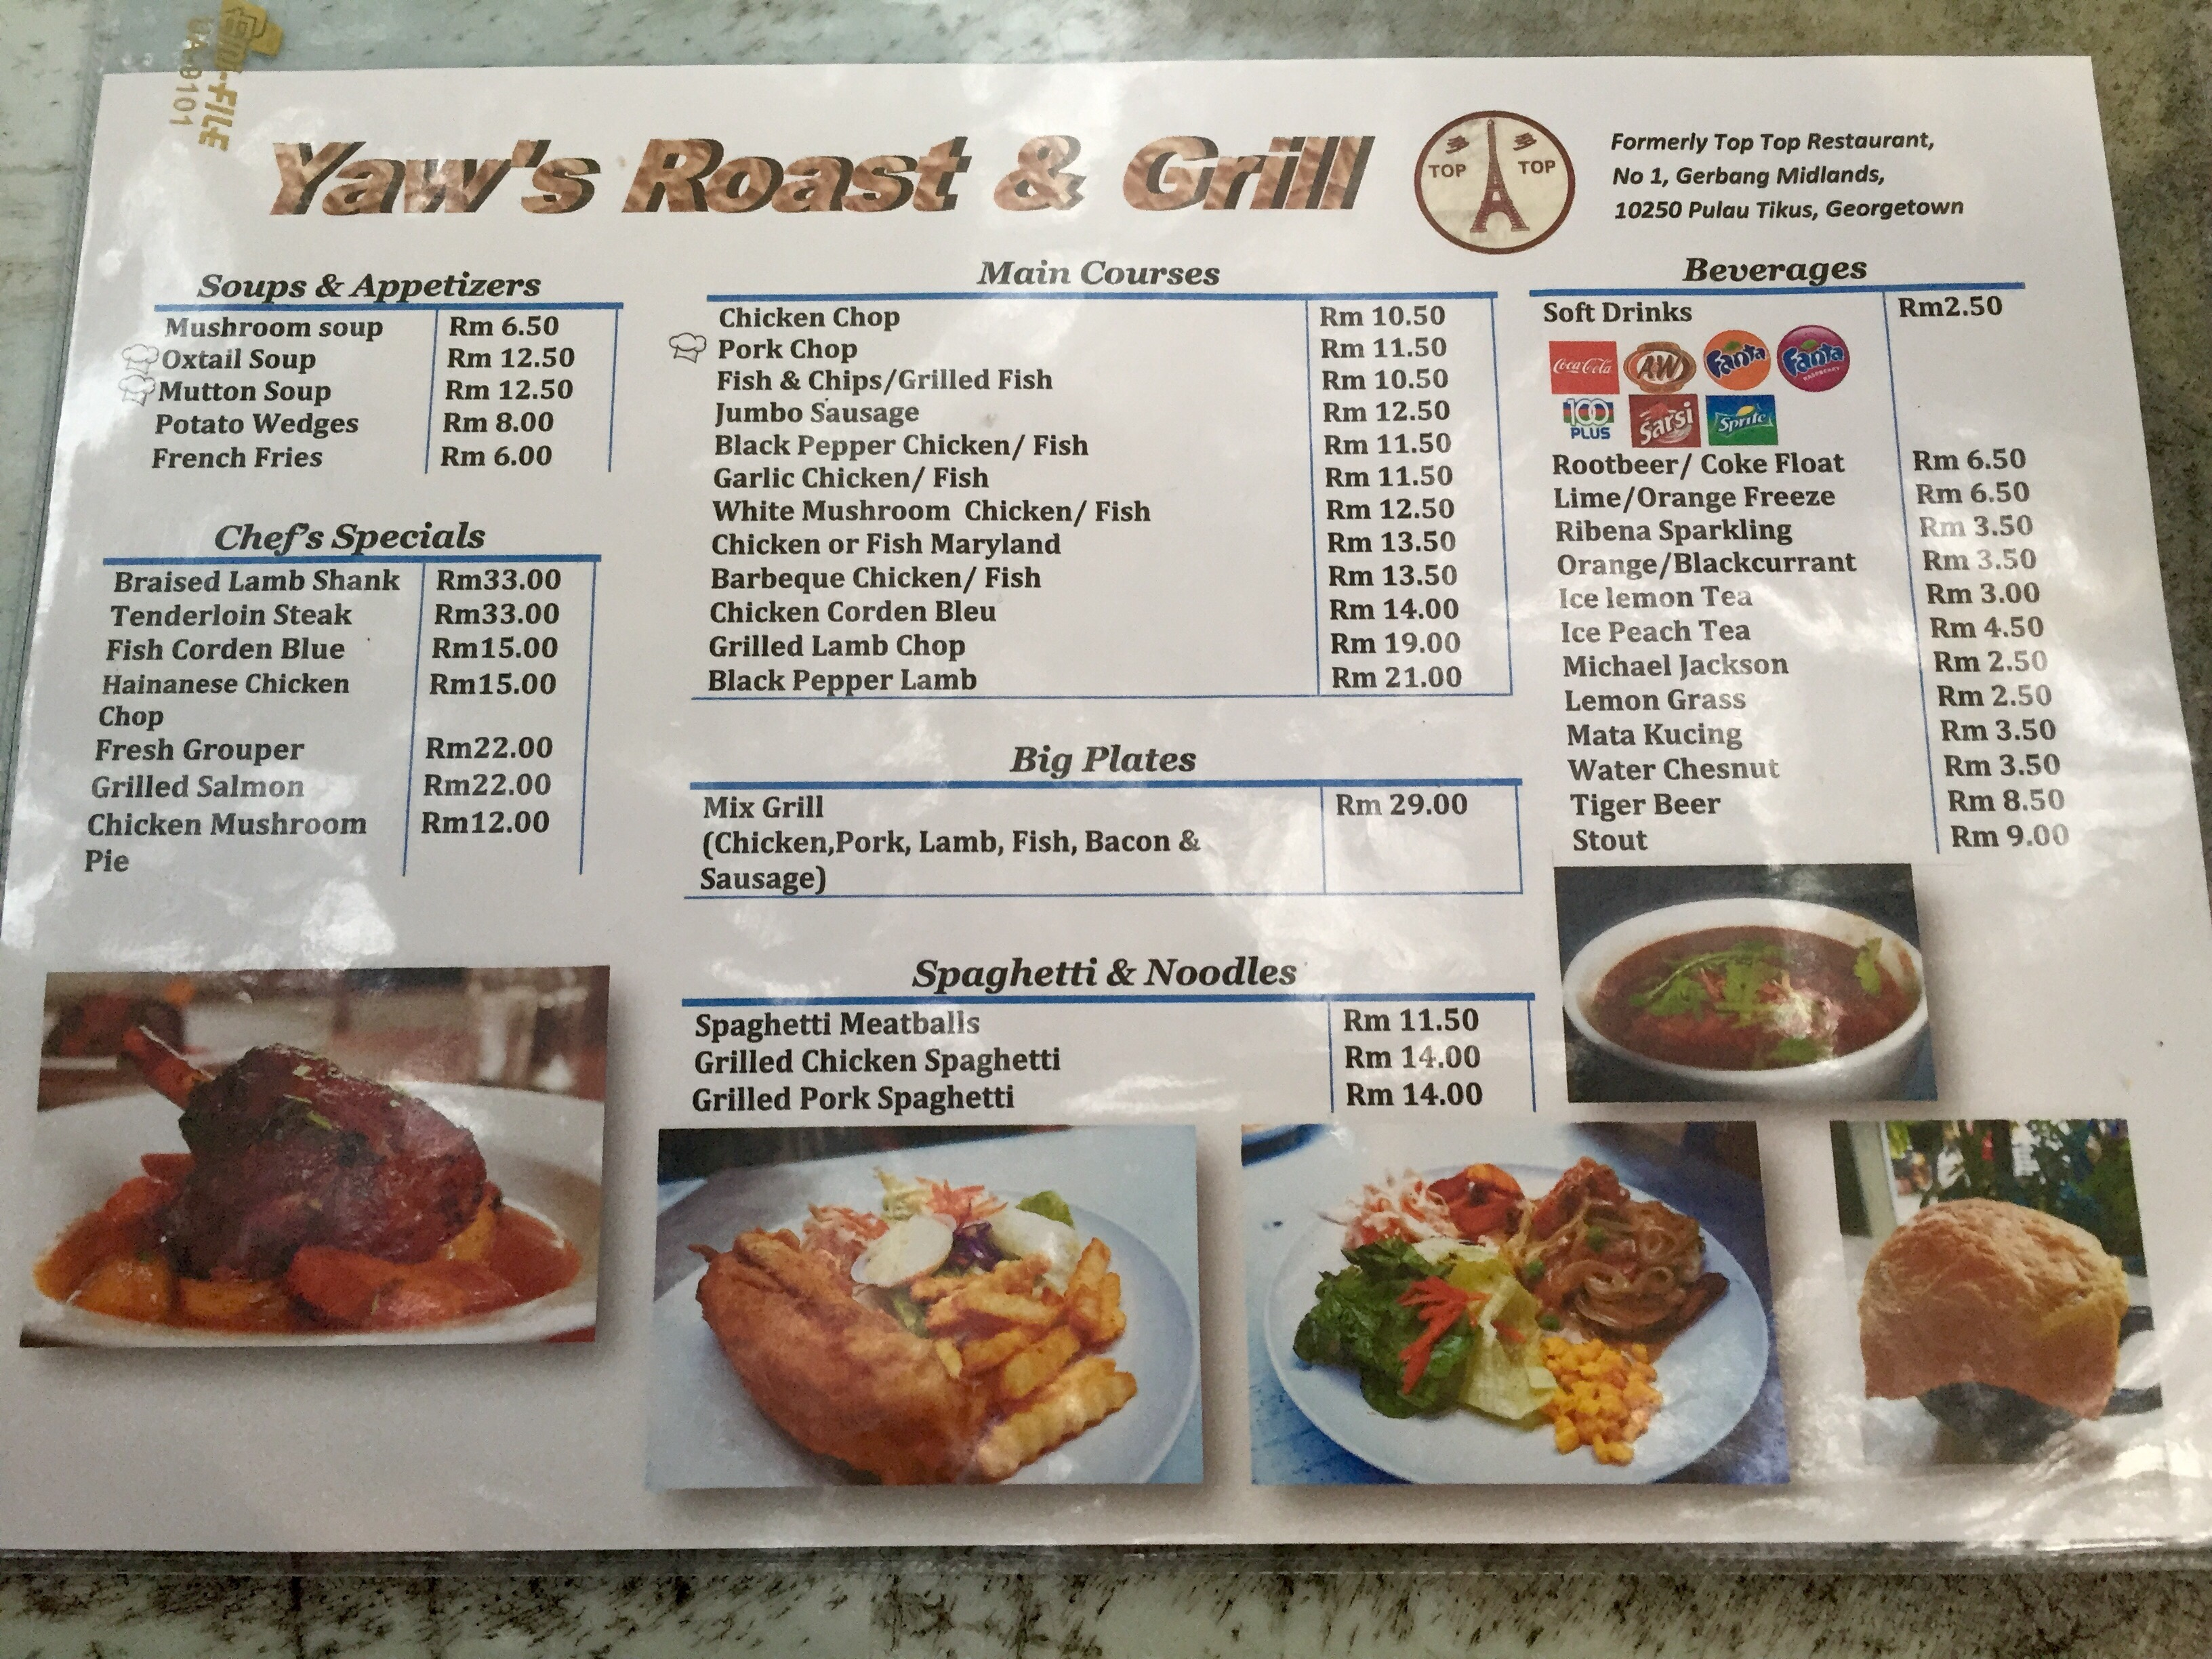 Eat like a local in penang yaws roast grill a home western food rm1050 and above for normal western foods such as chicken chop gorden blue maryland and it can goes up to rm35 for steak which is still a good price forumfinder Images